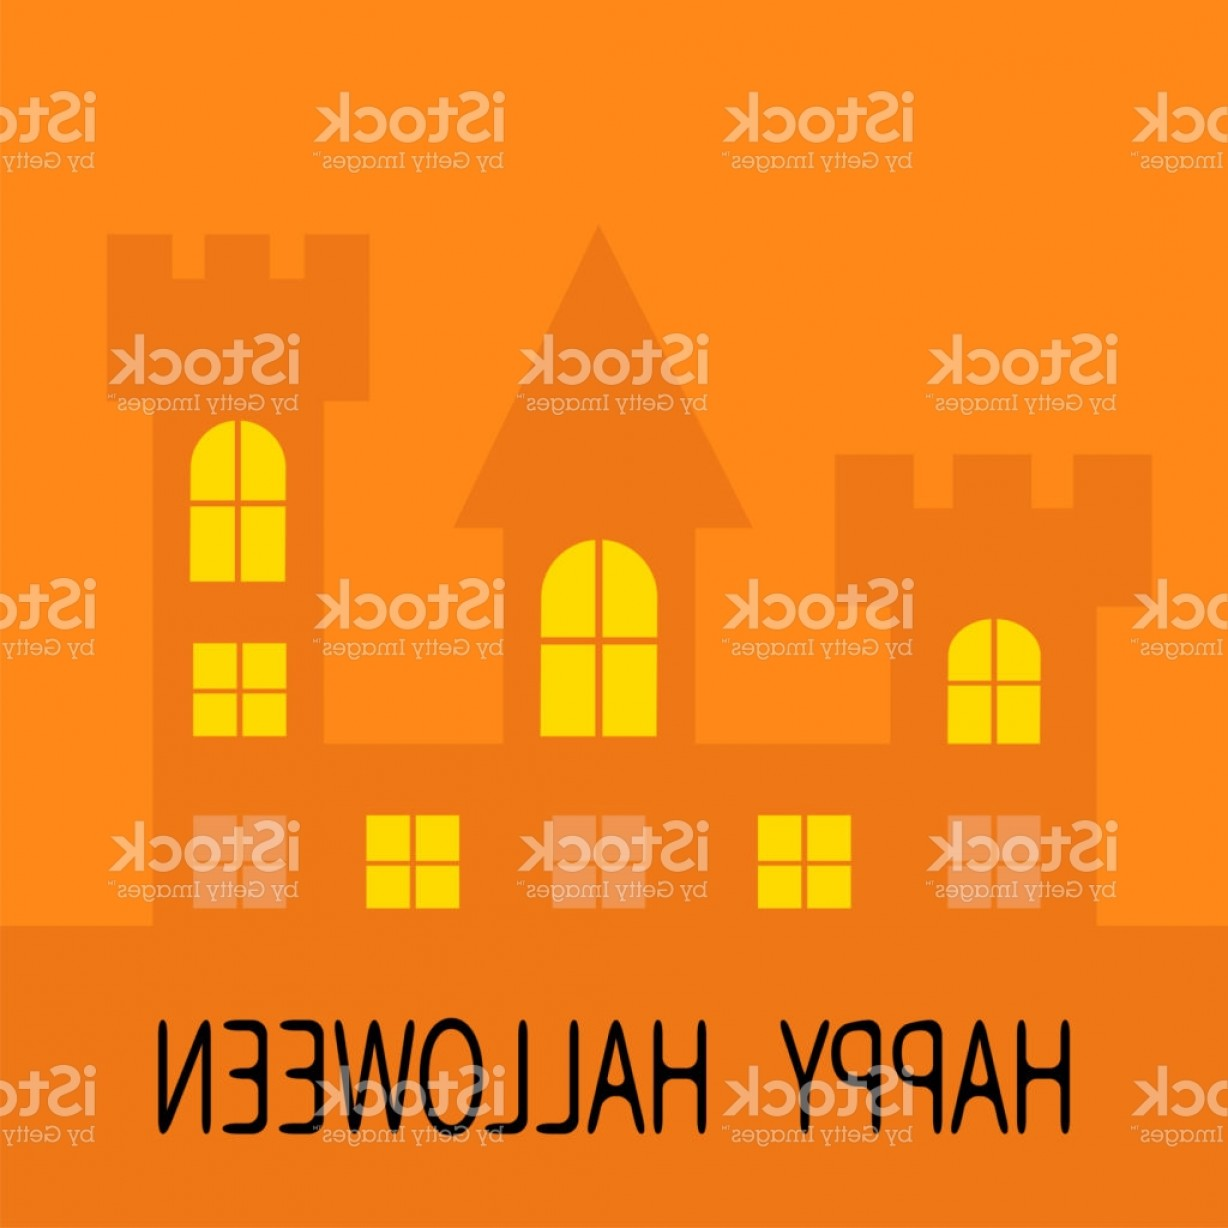 Halloween Haunted House Silhouette Vector: Happy Halloween Haunted House Shadow Dark Castle Tower Silhouette Switch On Yellow Gm